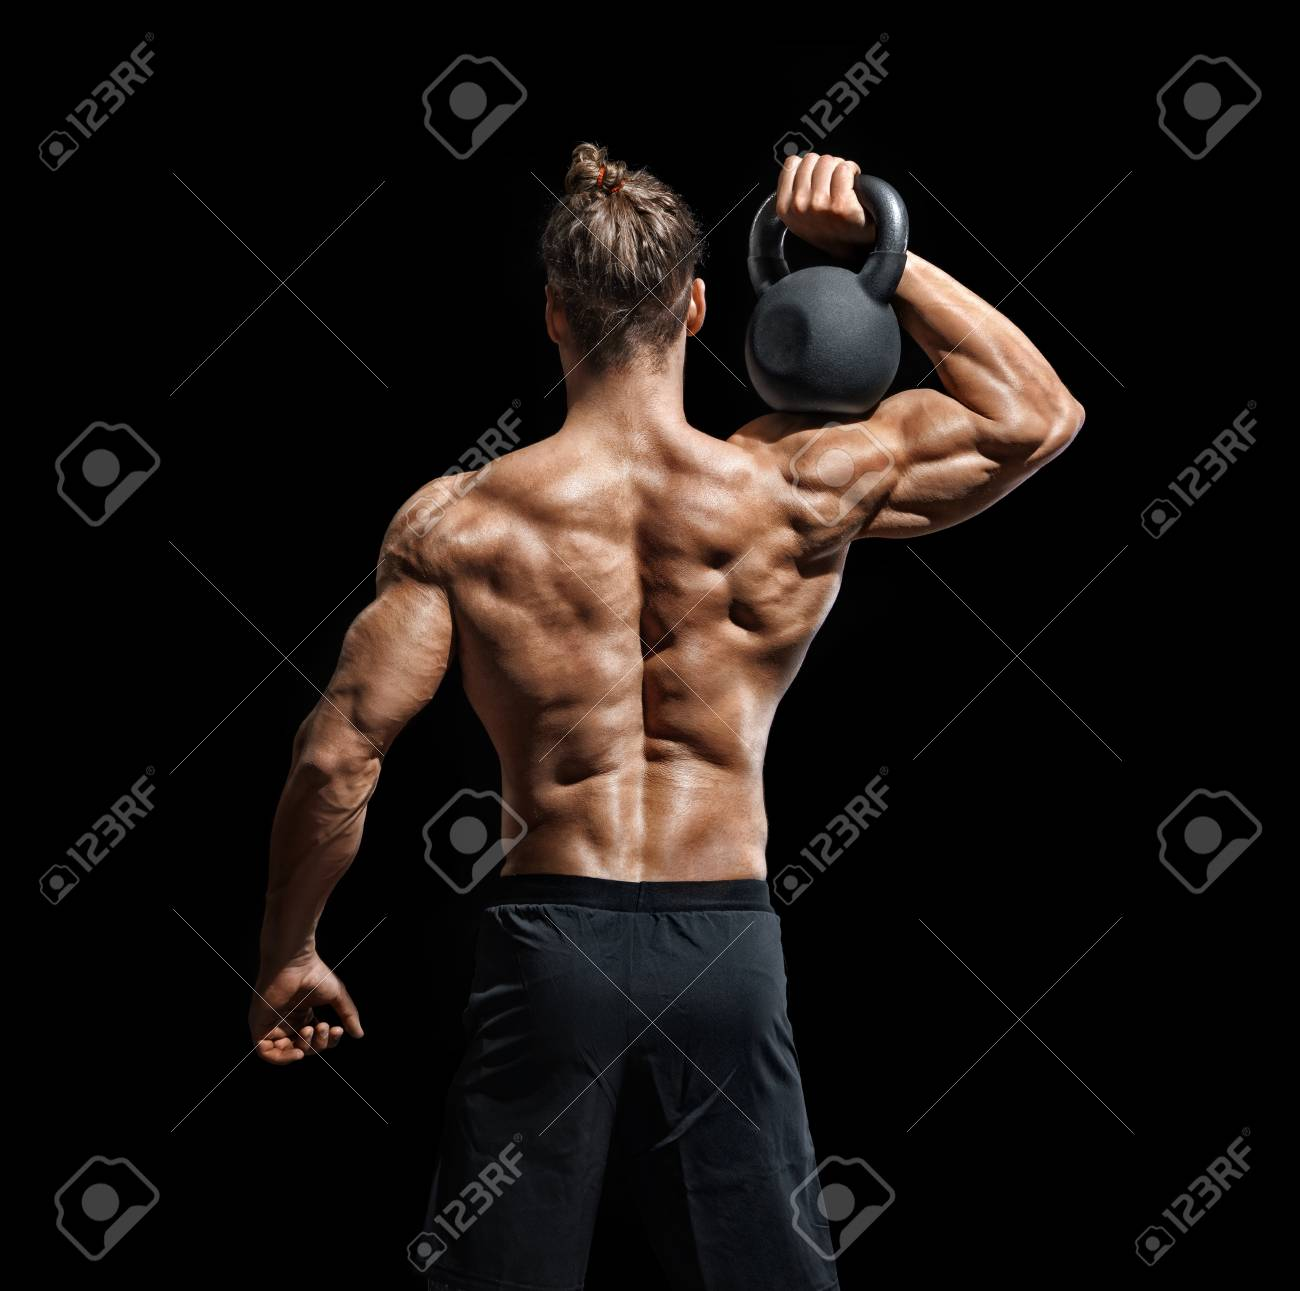 Kettlebell Bodybuilding Young Bodybuilder Doing Exercise With Kettlebell Rear View Of